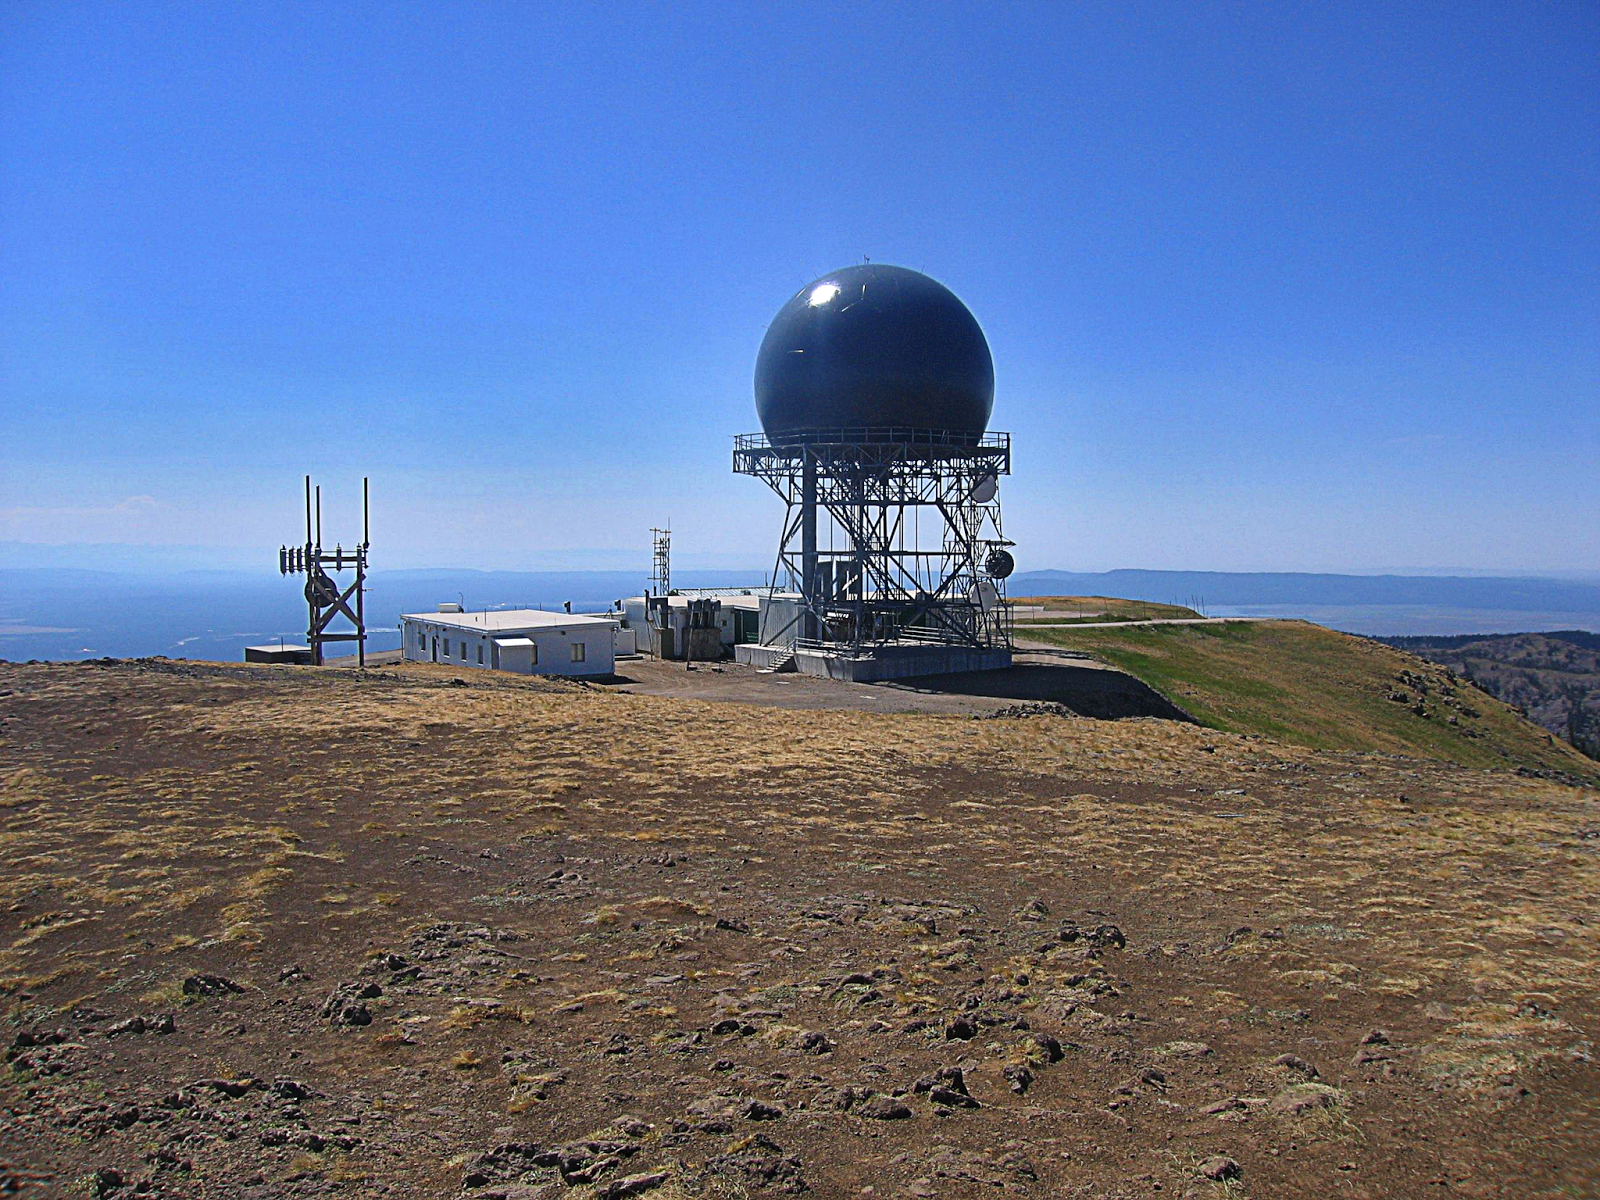 Sawtelle Peak Faa Radar Dome Island Park Idaho By